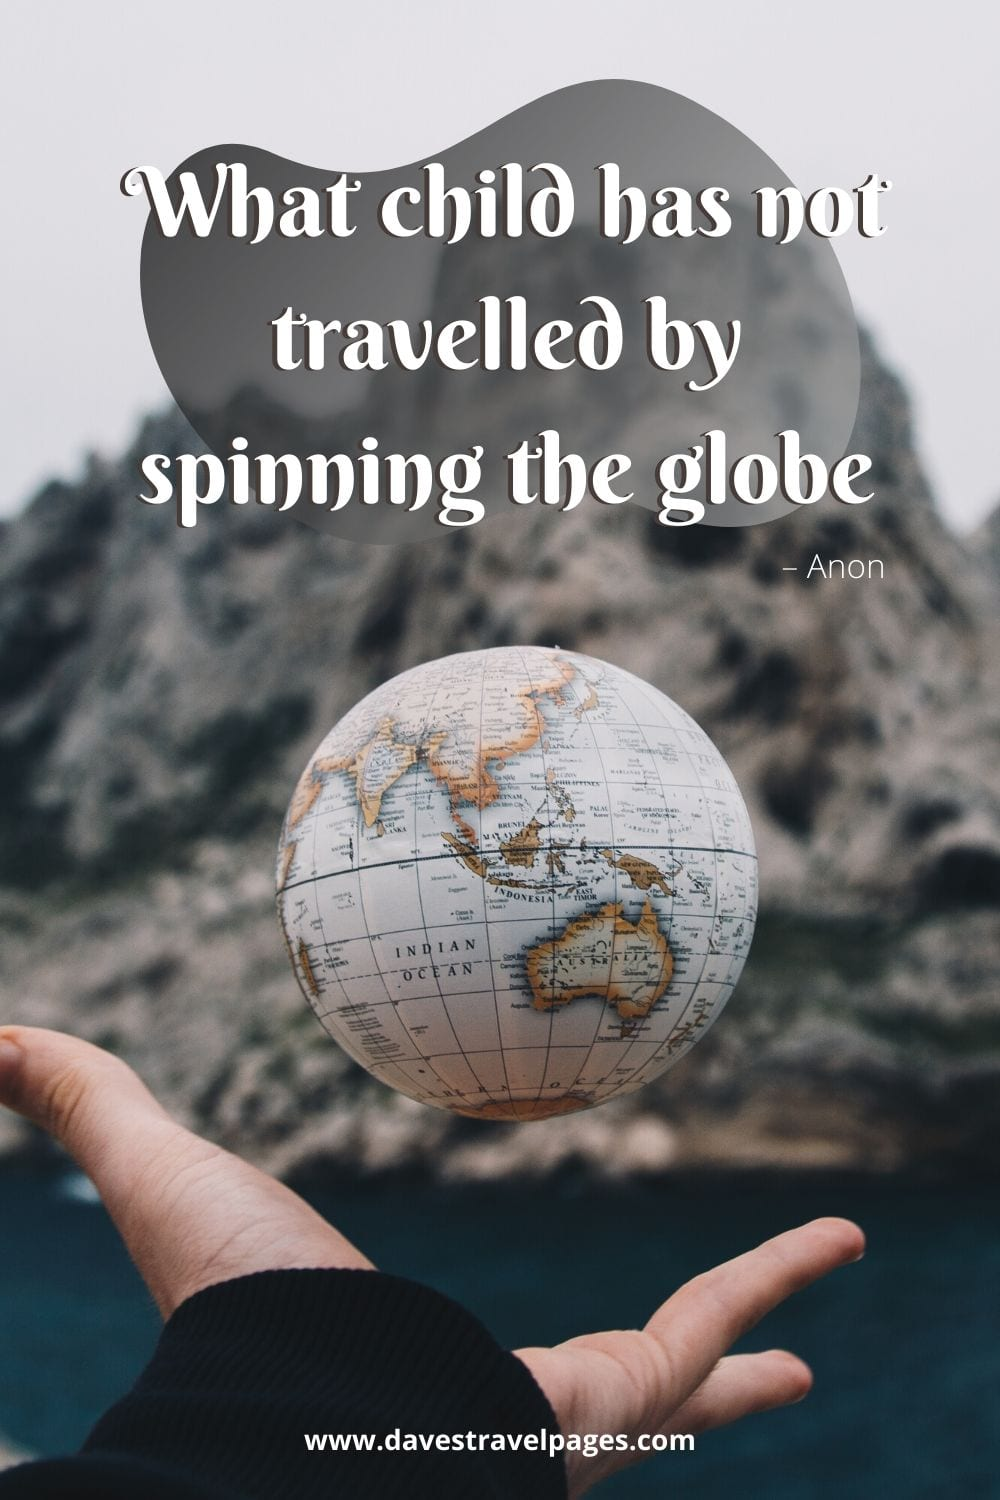 """Travel the world quotes: """"What child has not travelled by spinning the globe."""" – Anon."""